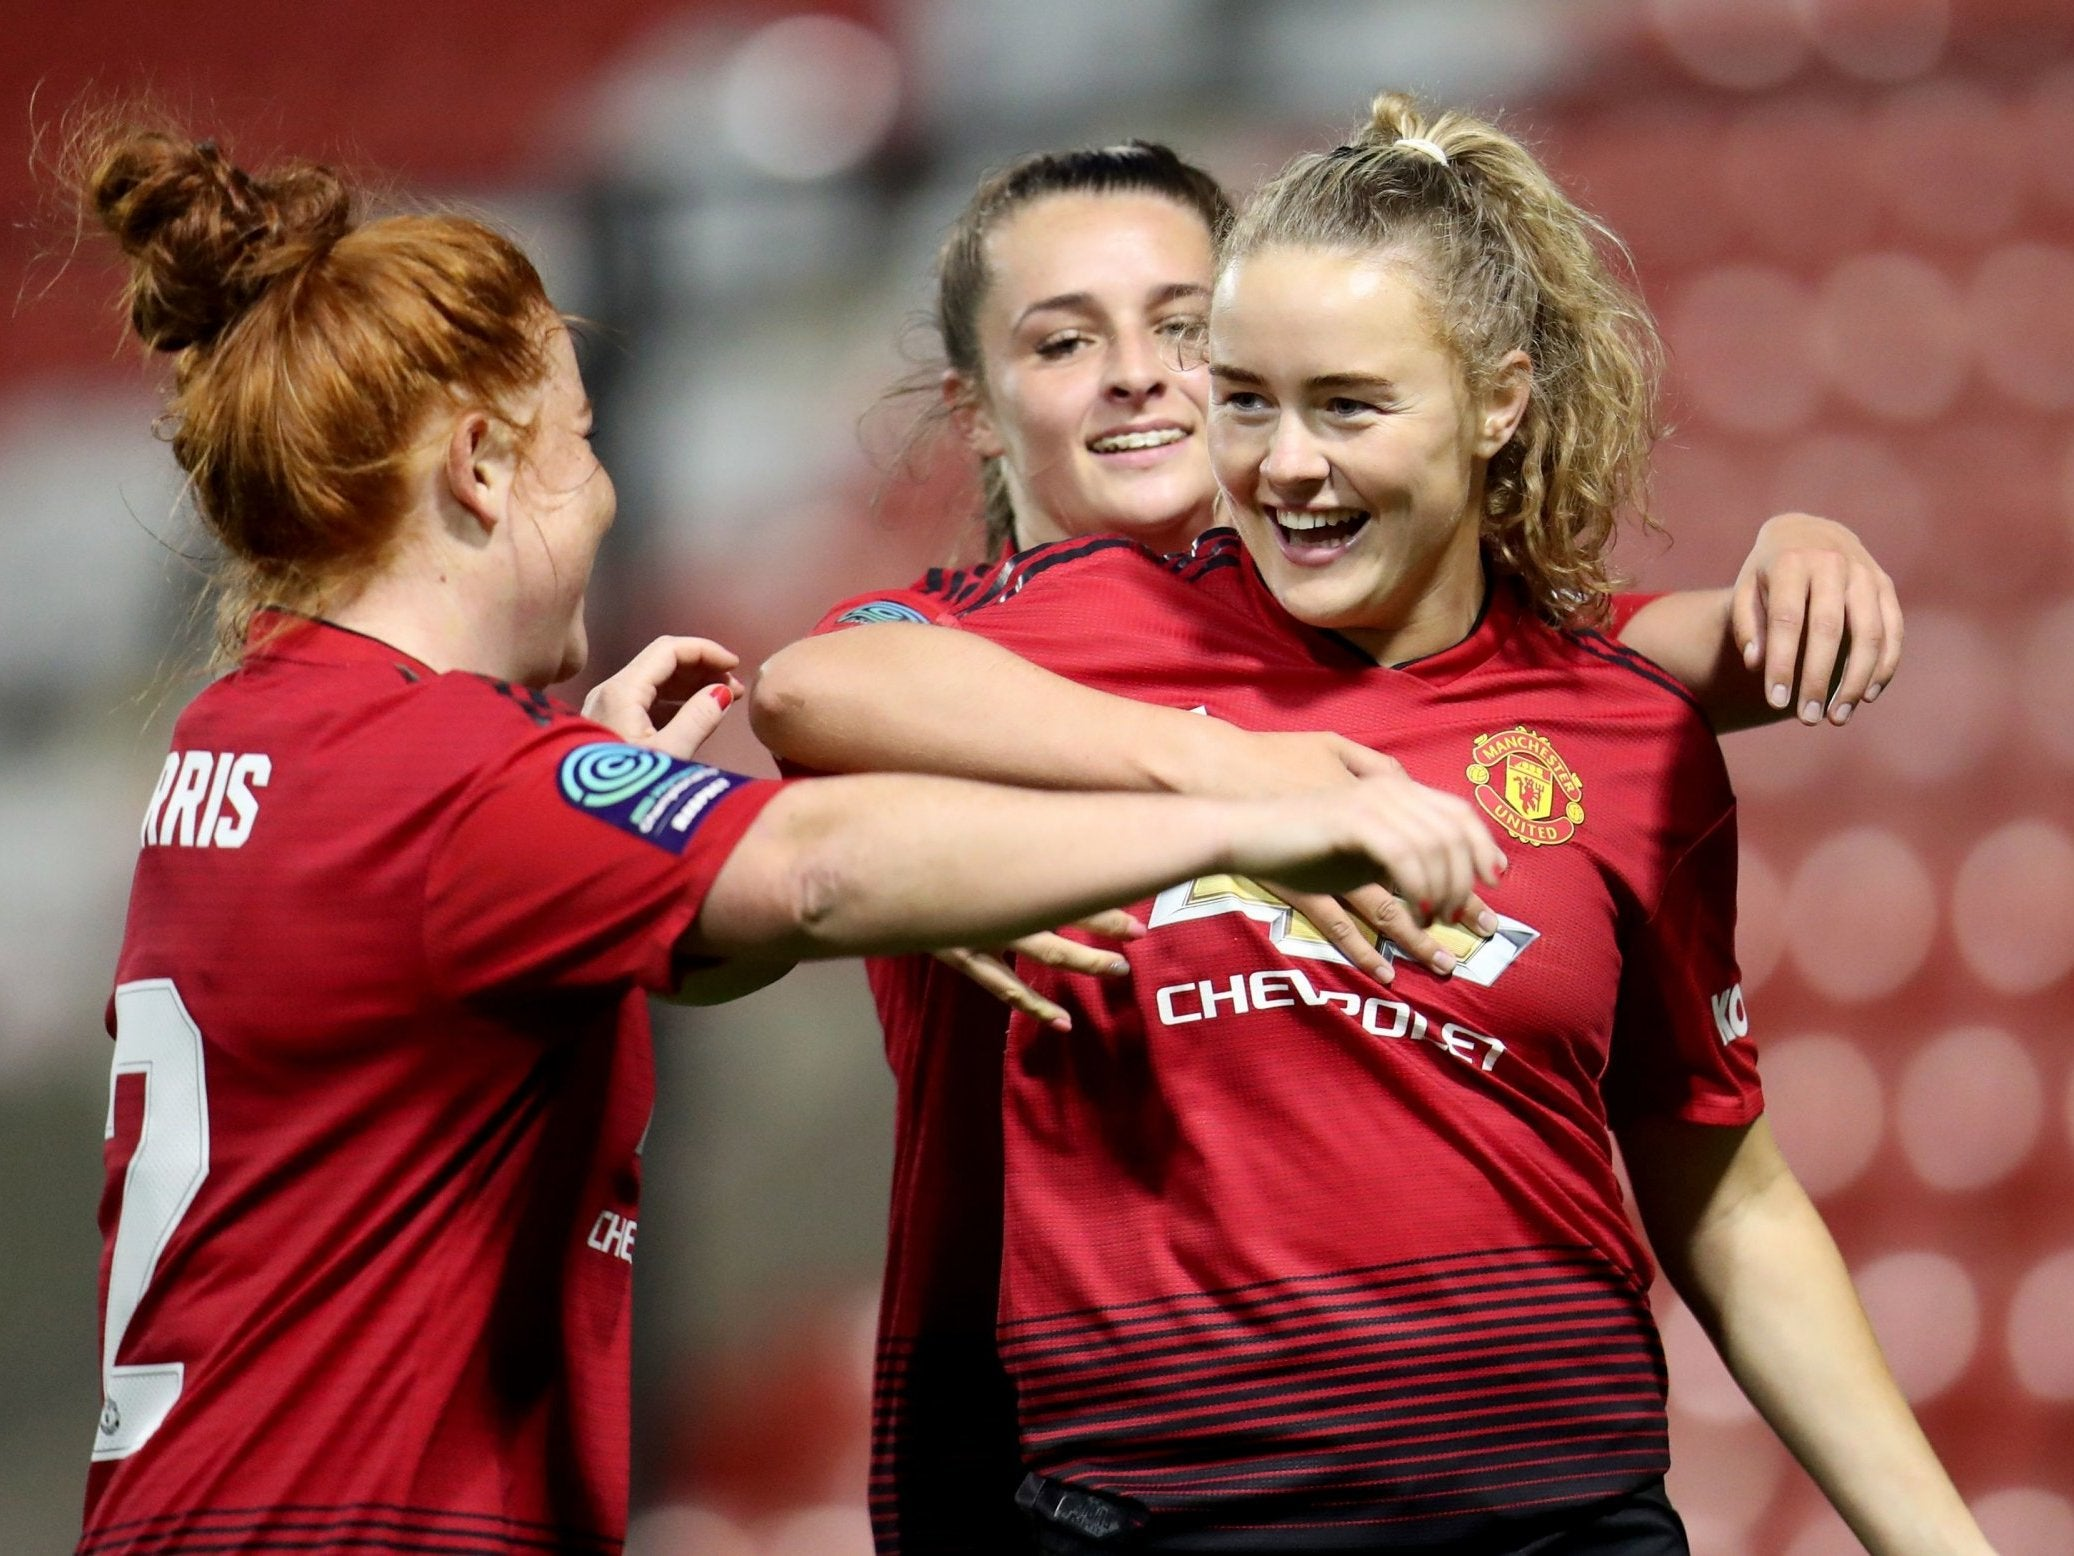 Manchester United Women win promotion to Super League after thrashing Aston Villa